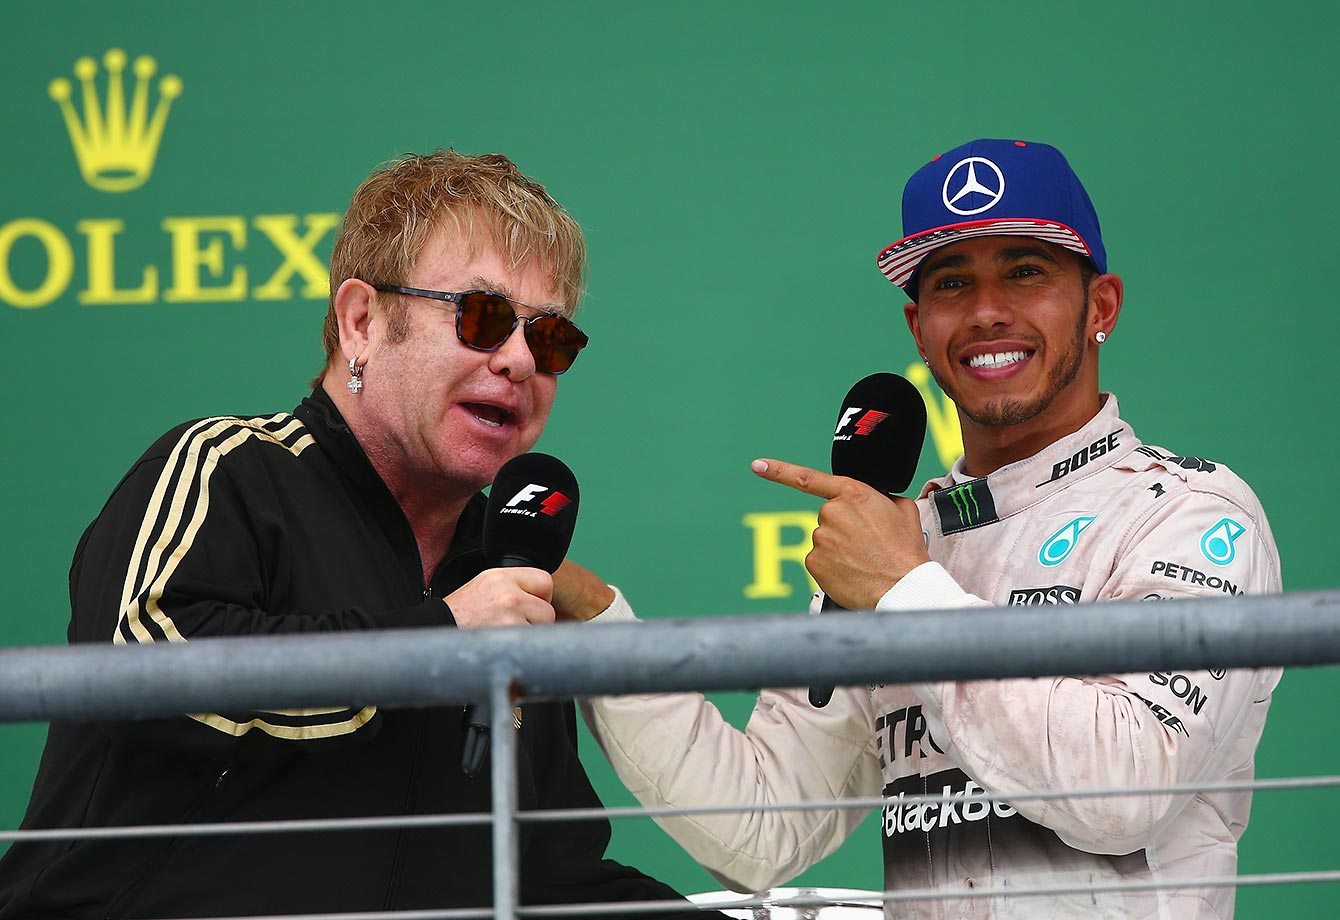 Lewis Hamilton celebrates on the podium with Elton John after winning the U.S. Formula One Grand Prix.